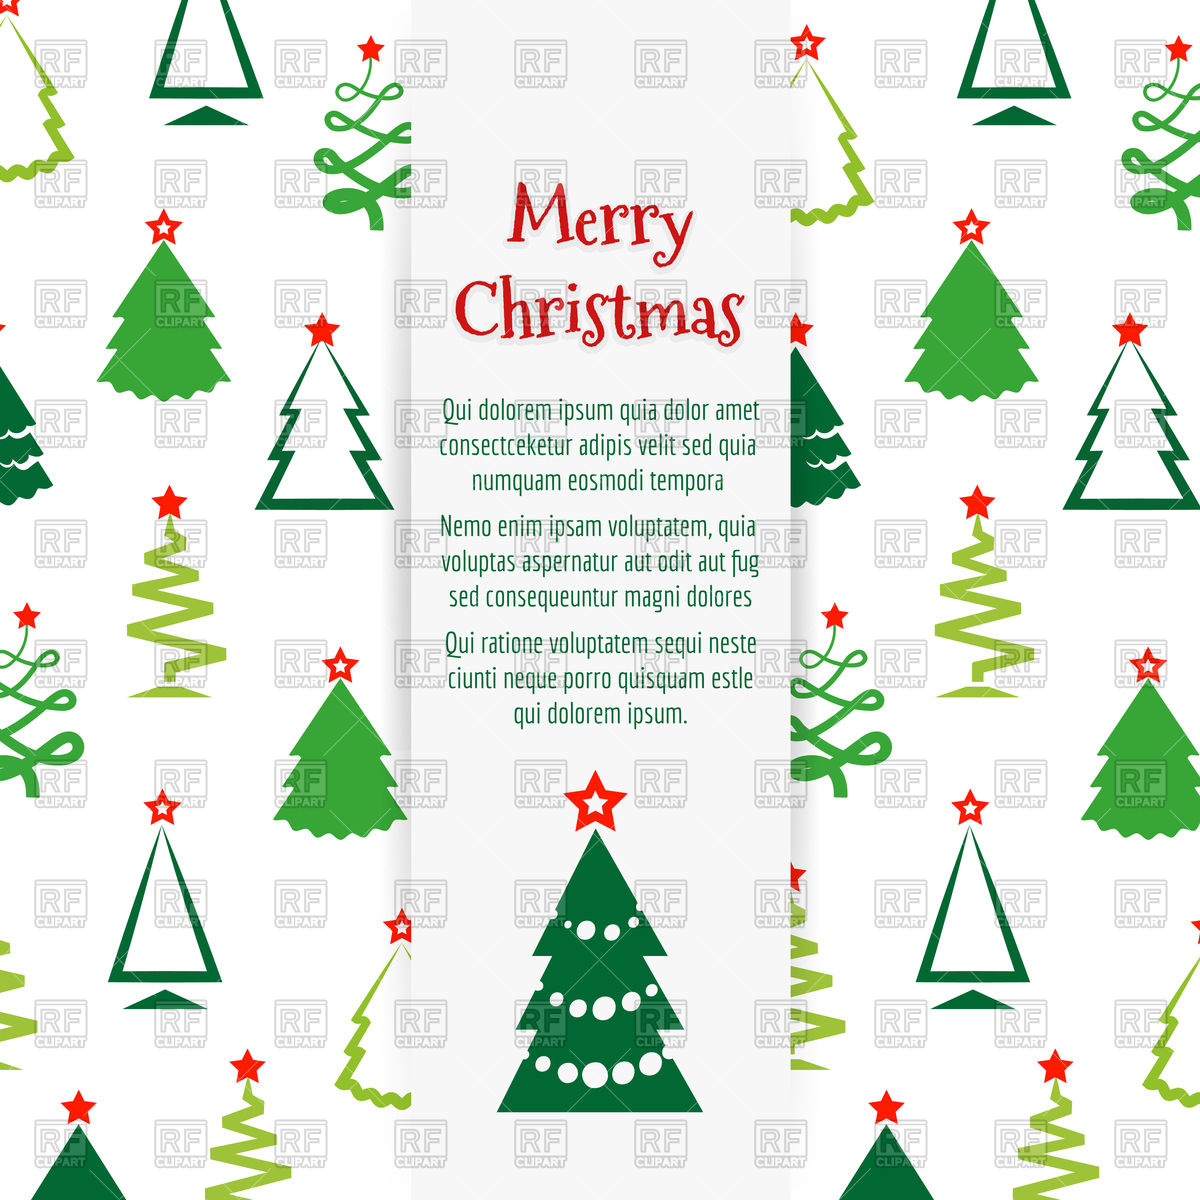 Colorful Christmas tree banner design Stock Vector Image.